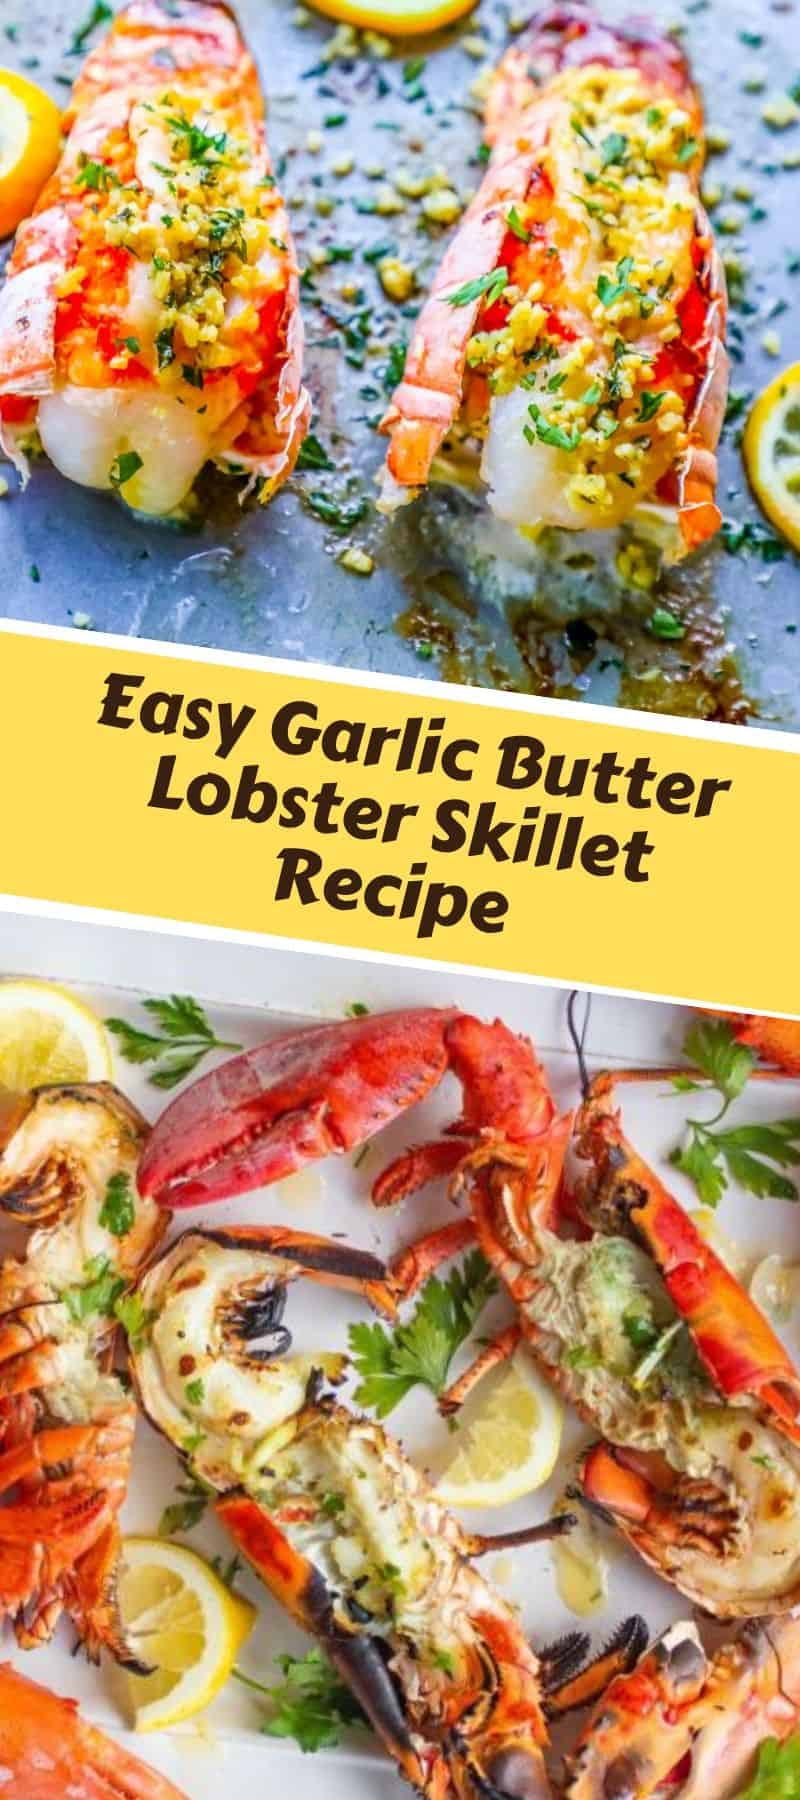 Easy Garlic Butter Lobster Skillet Recipe 3